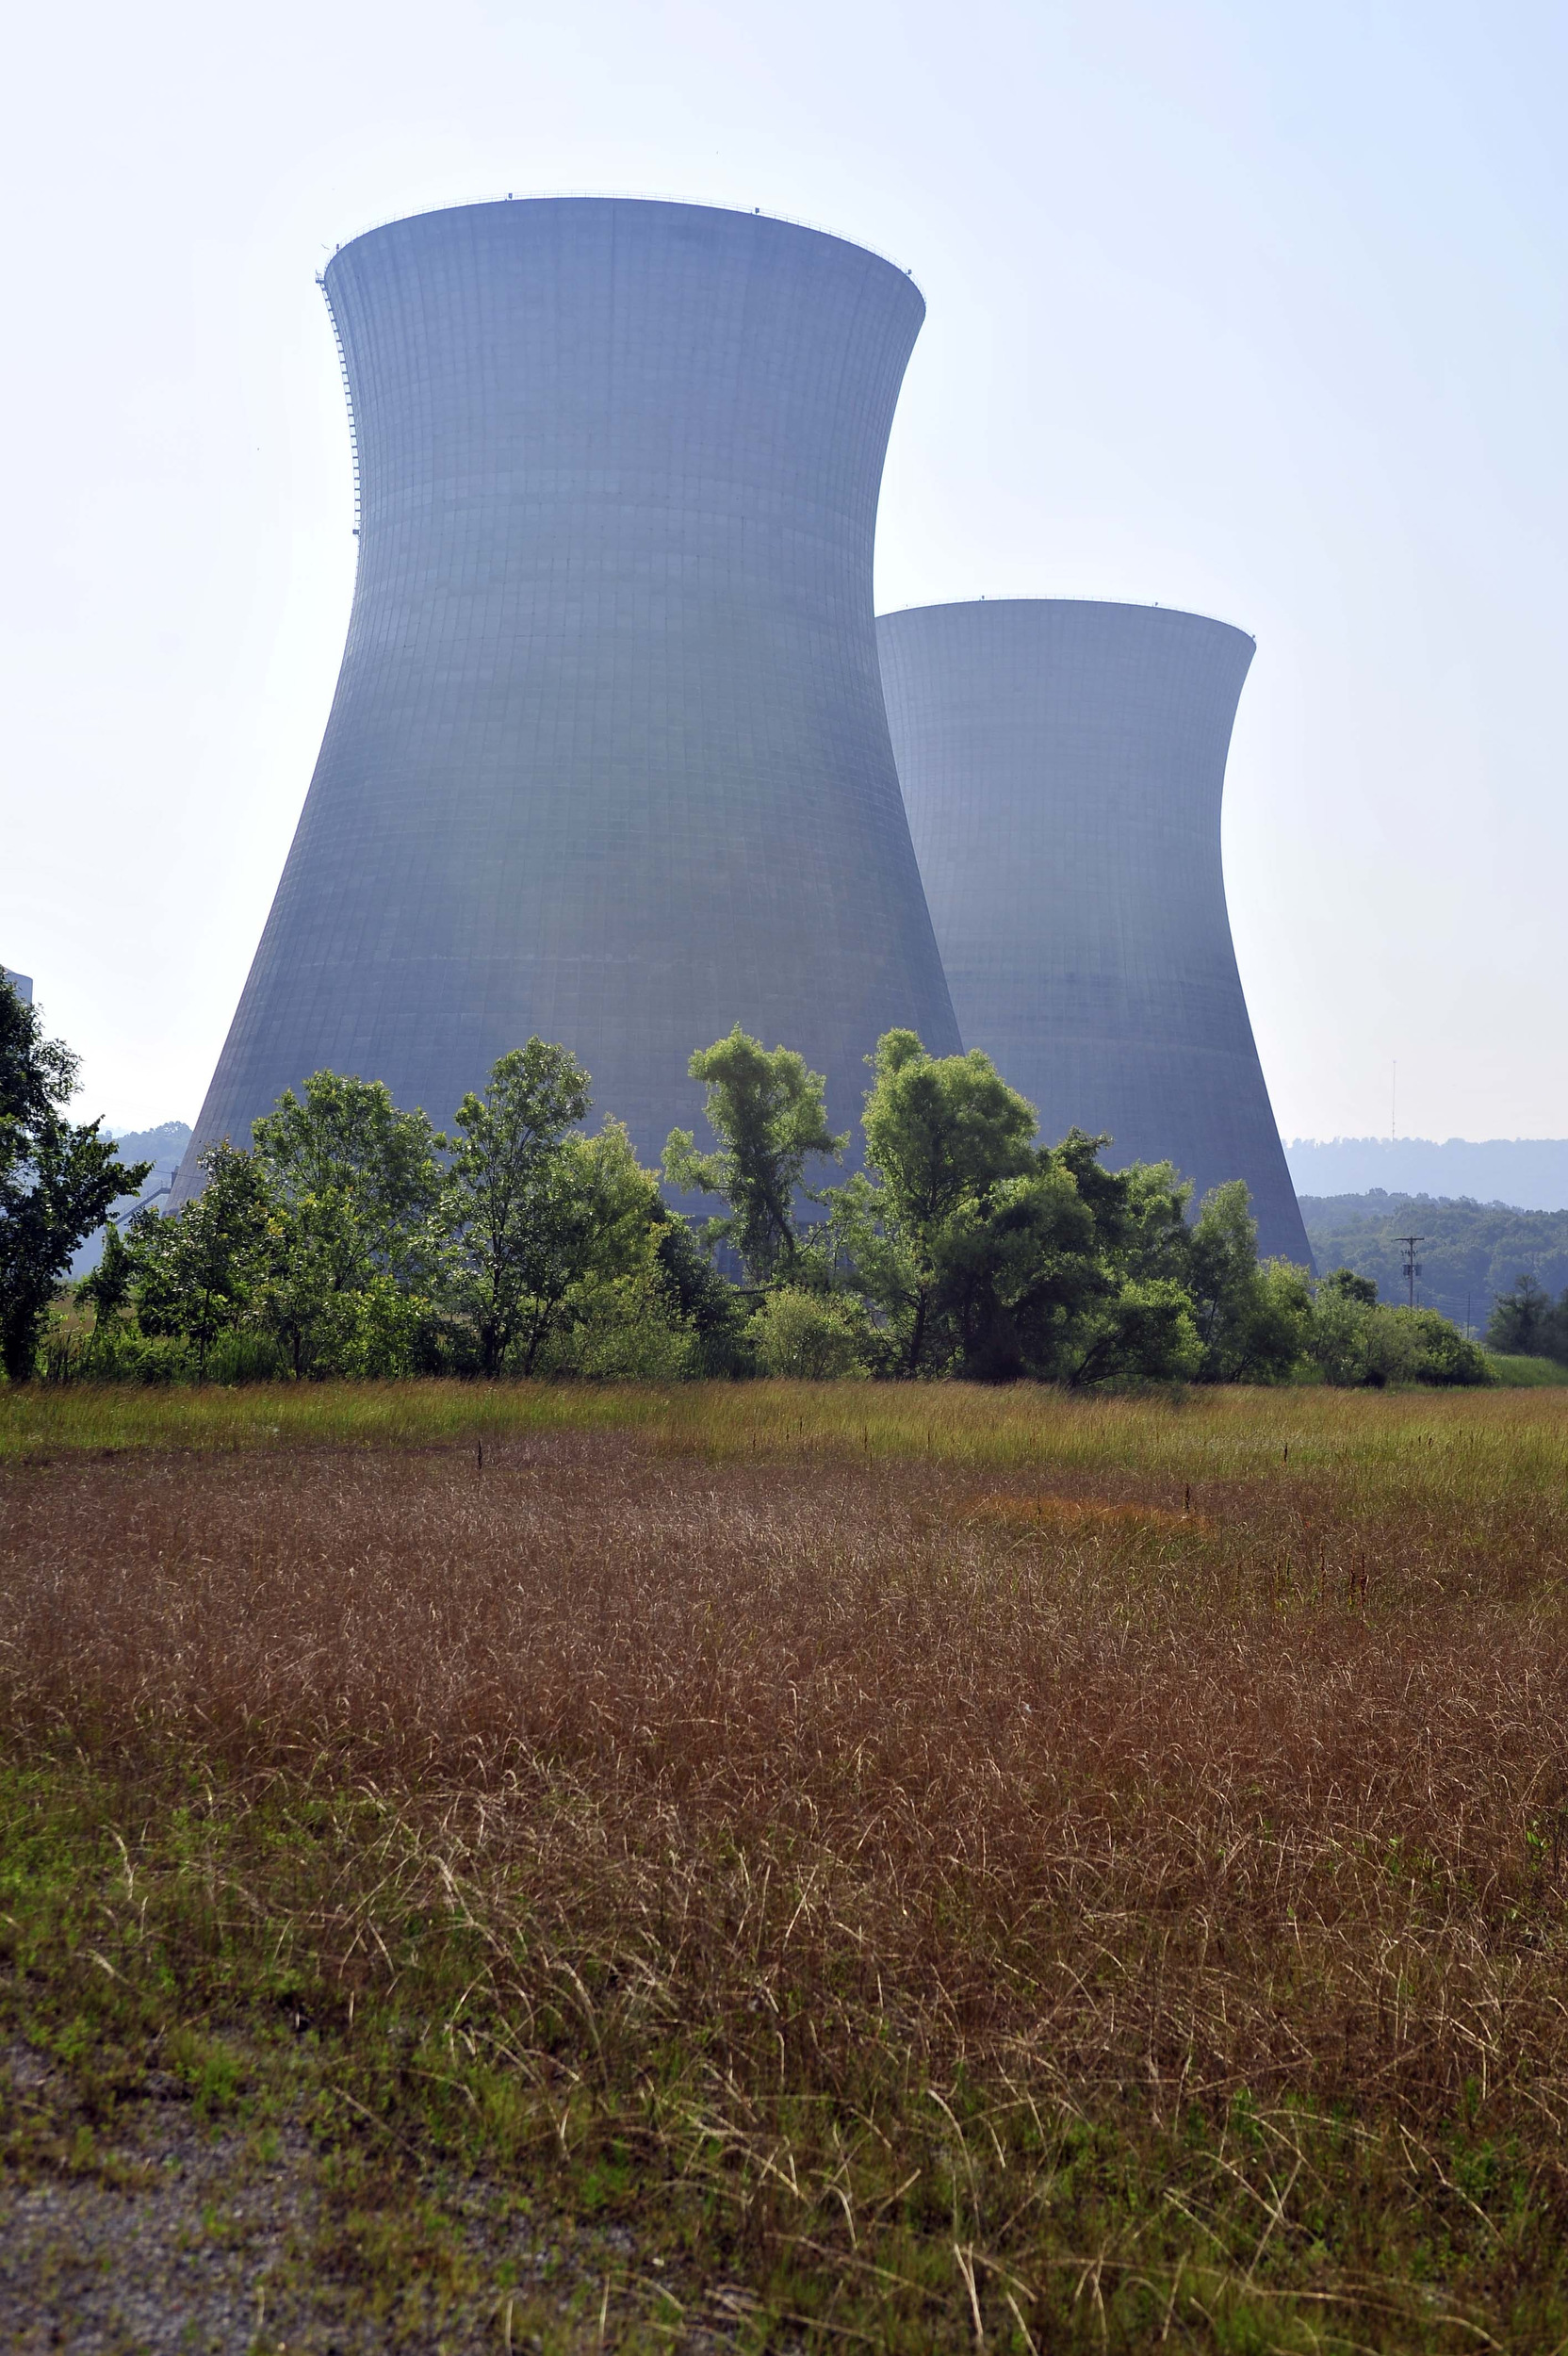 The cooling towers at the non-operational Bellefonte Nuclear Power Plant June 2, 2011 in rural Hollywood, Alabama.